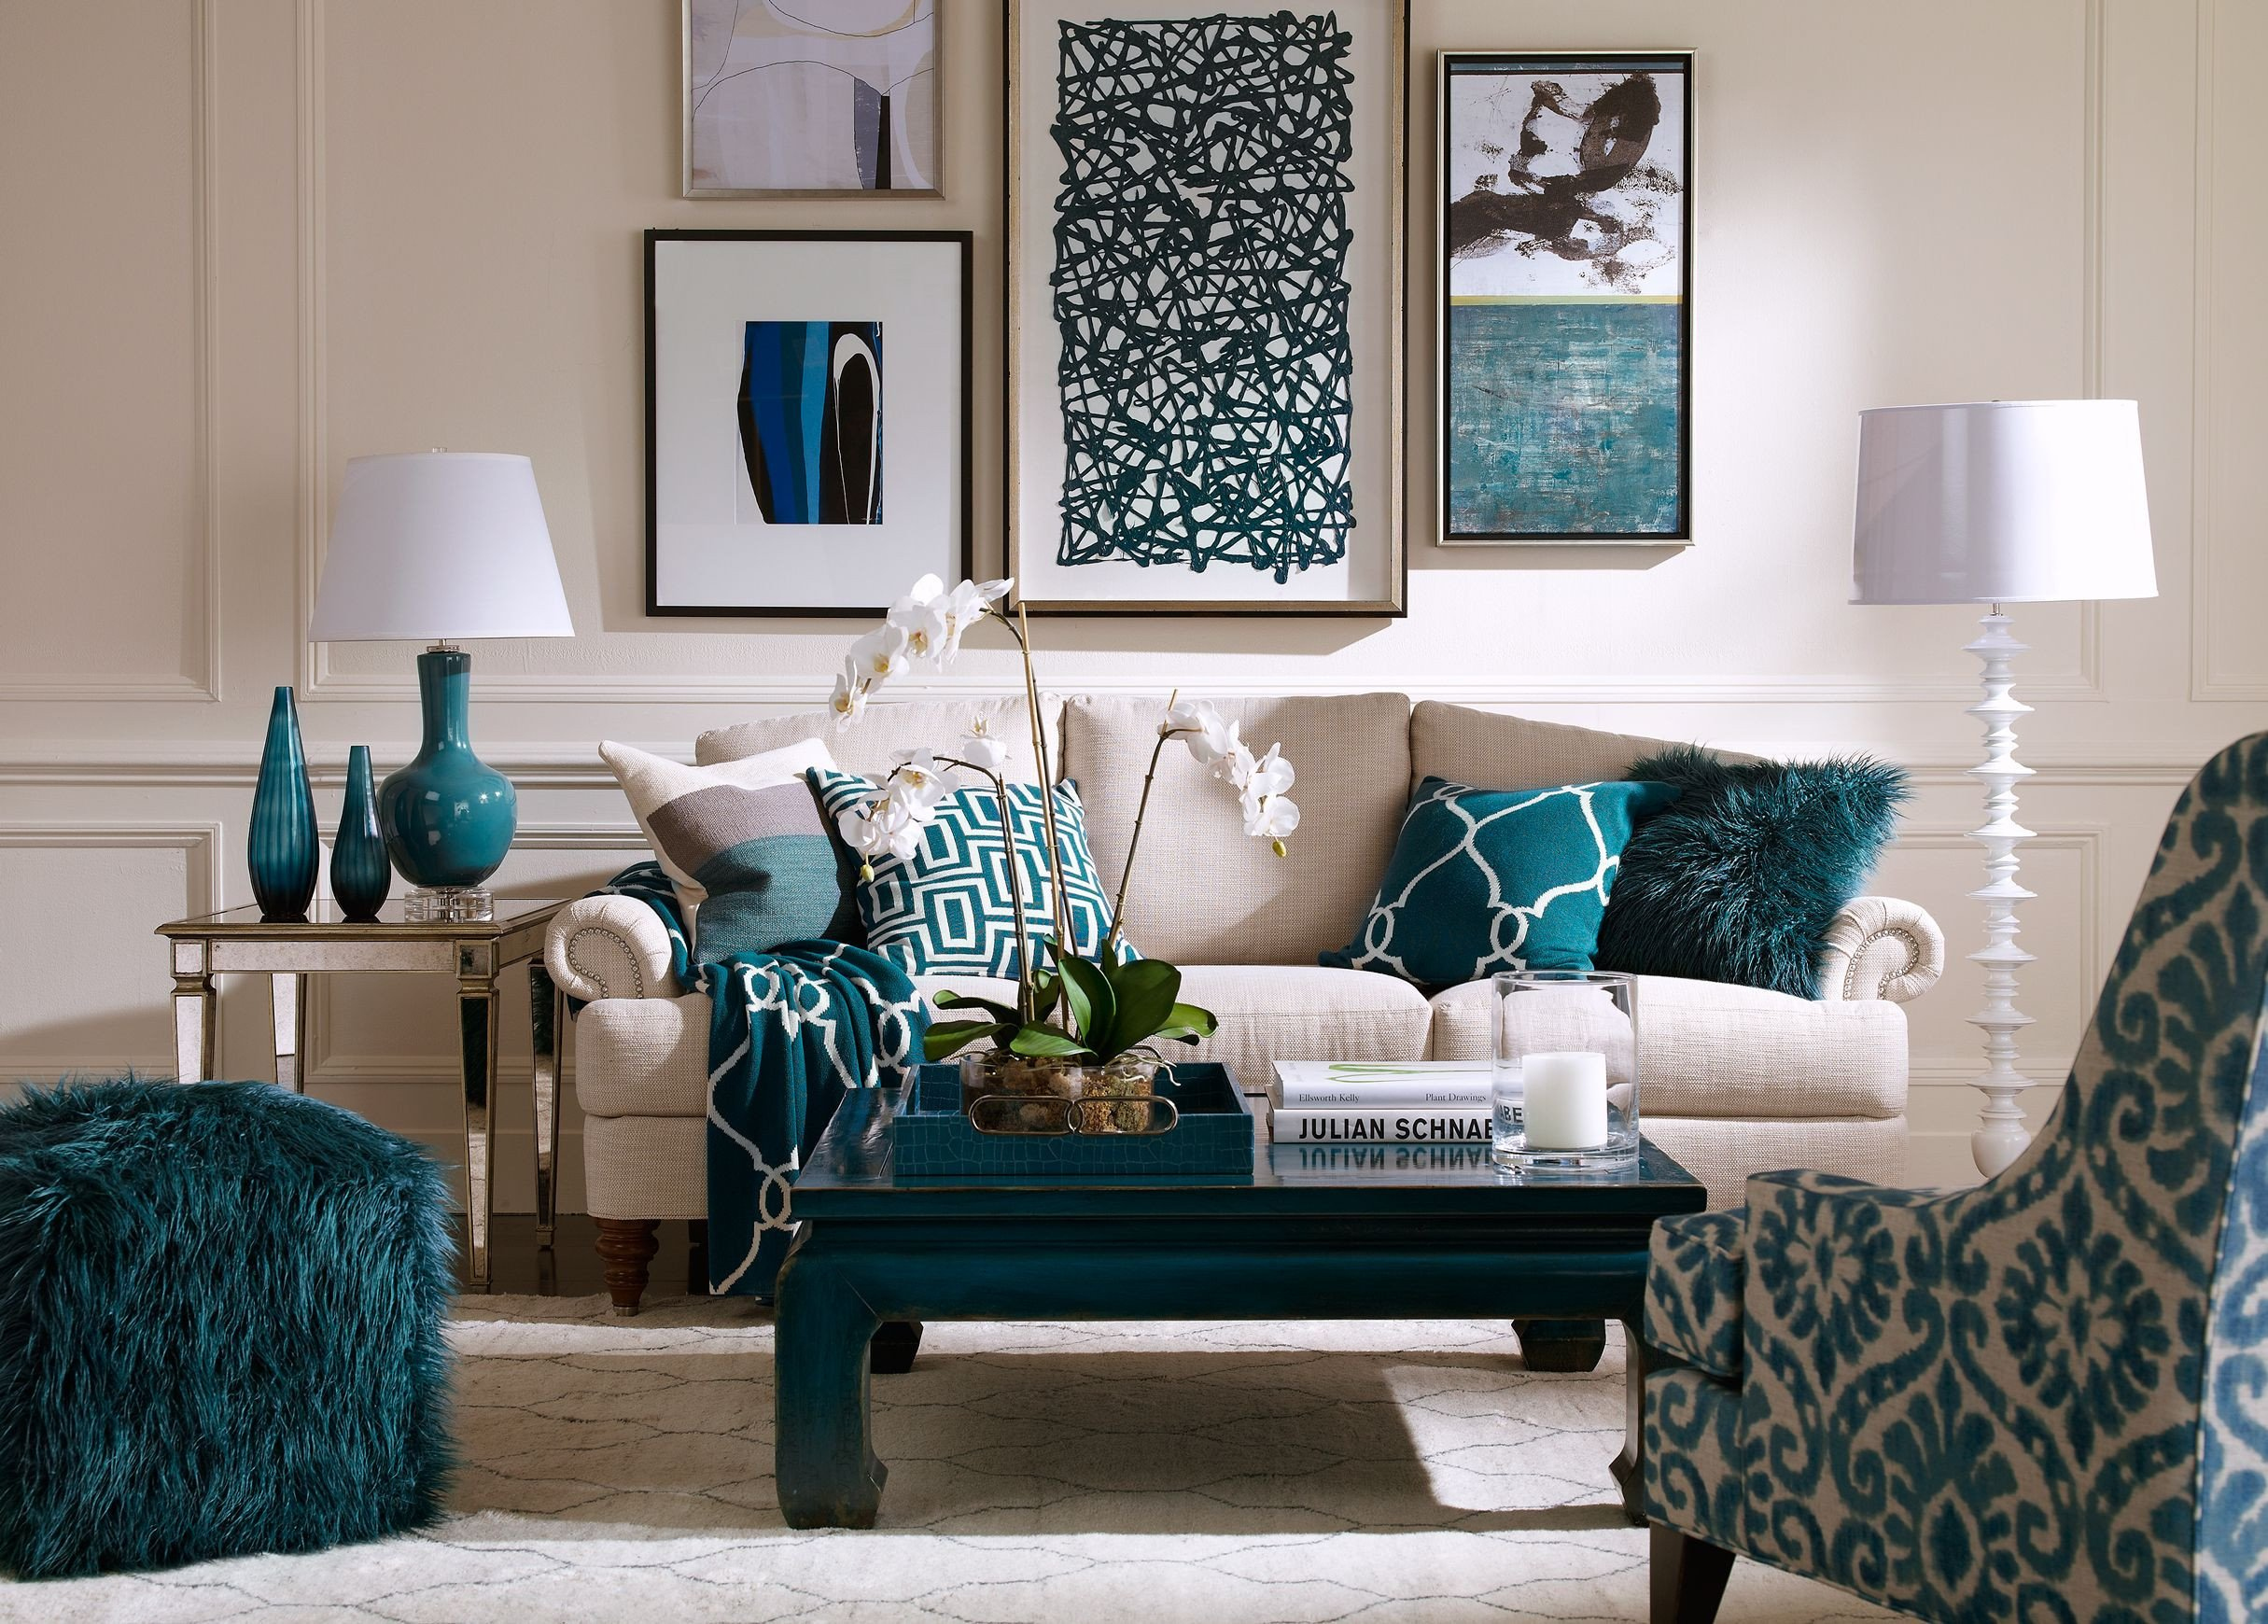 Teal Decor for Living Room Awesome Turquoise Dining Room Ideas Turquoise Rooms Turquoise Living Room Accessories Using Turquoise